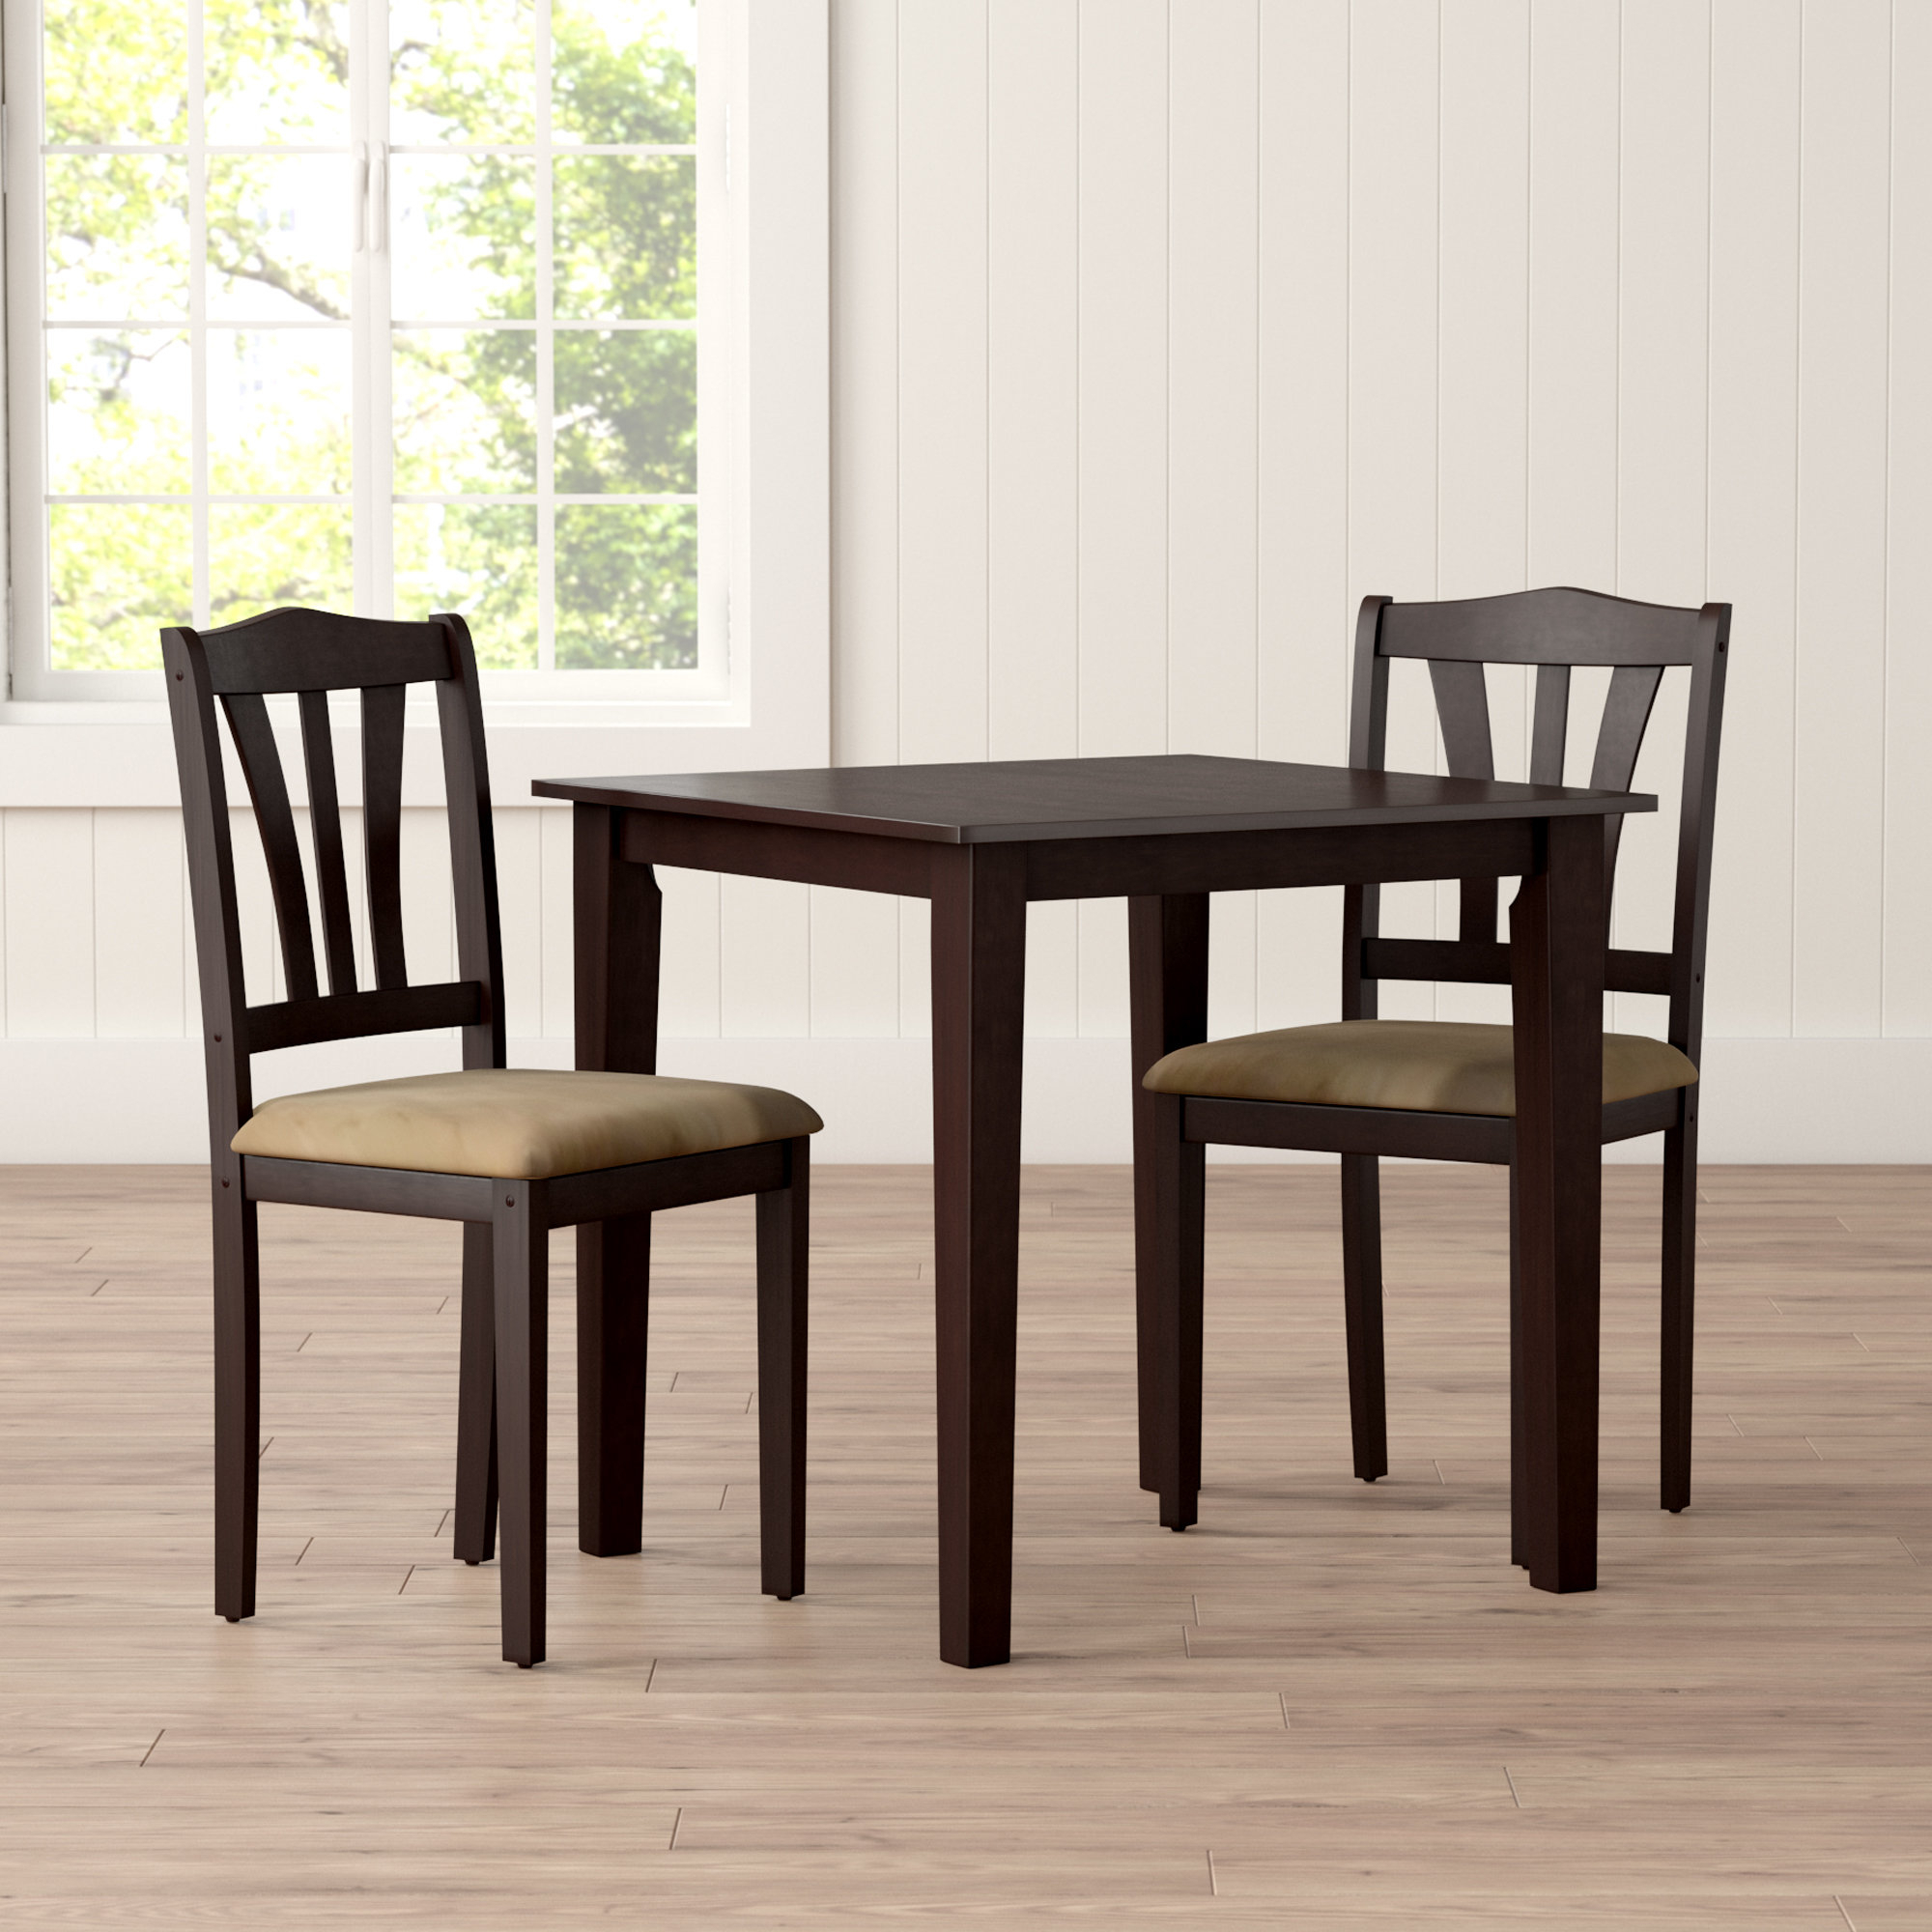 Kinsler 3 Piece Bistro Sets In Newest Alcott Hill Dinah 3 Piece Dining Set & Reviews (Gallery 5 of 25)